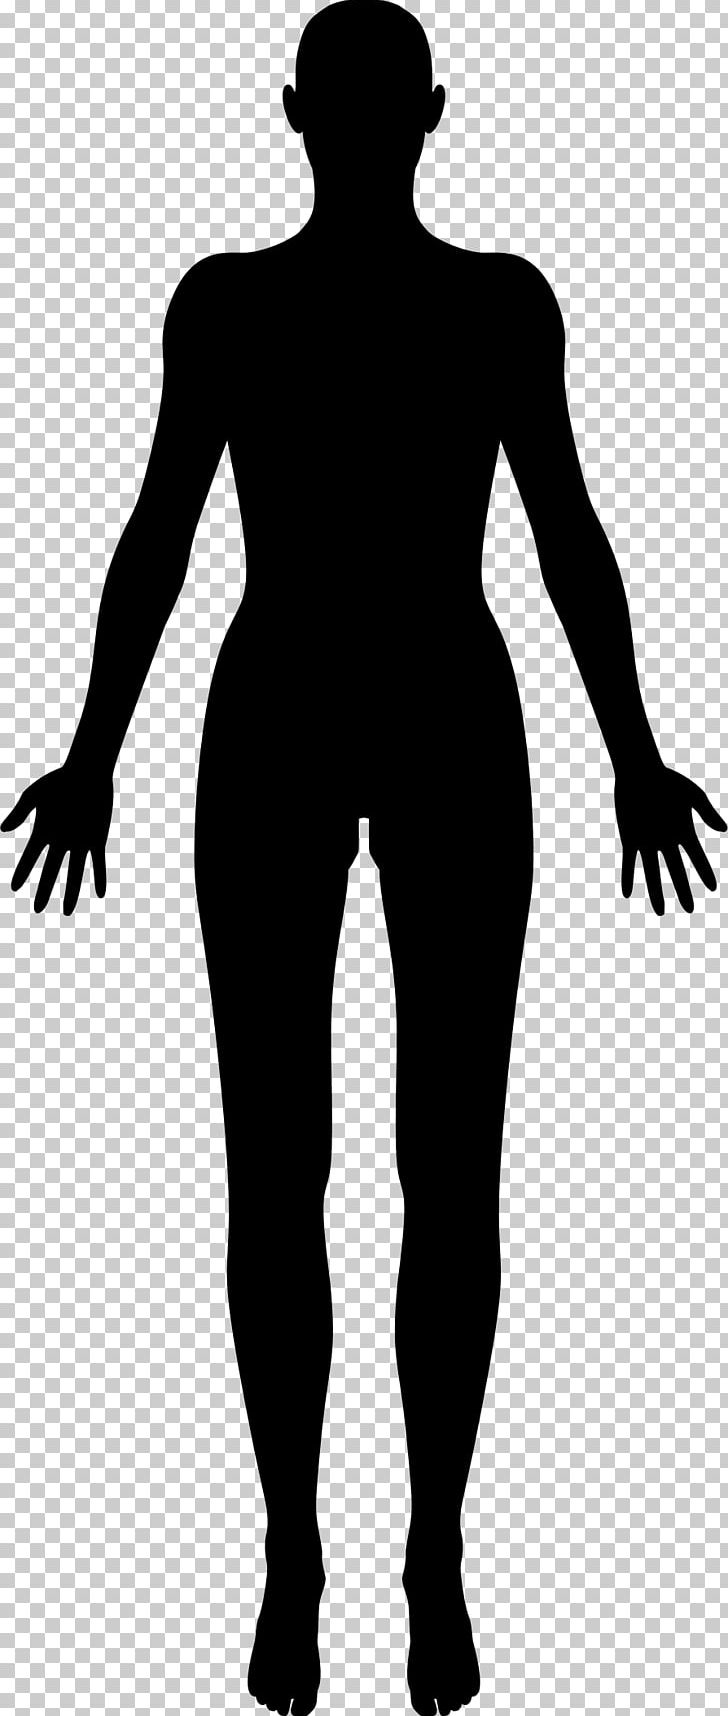 Female Body Shape Human Body Silhouette PNG, Clipart.